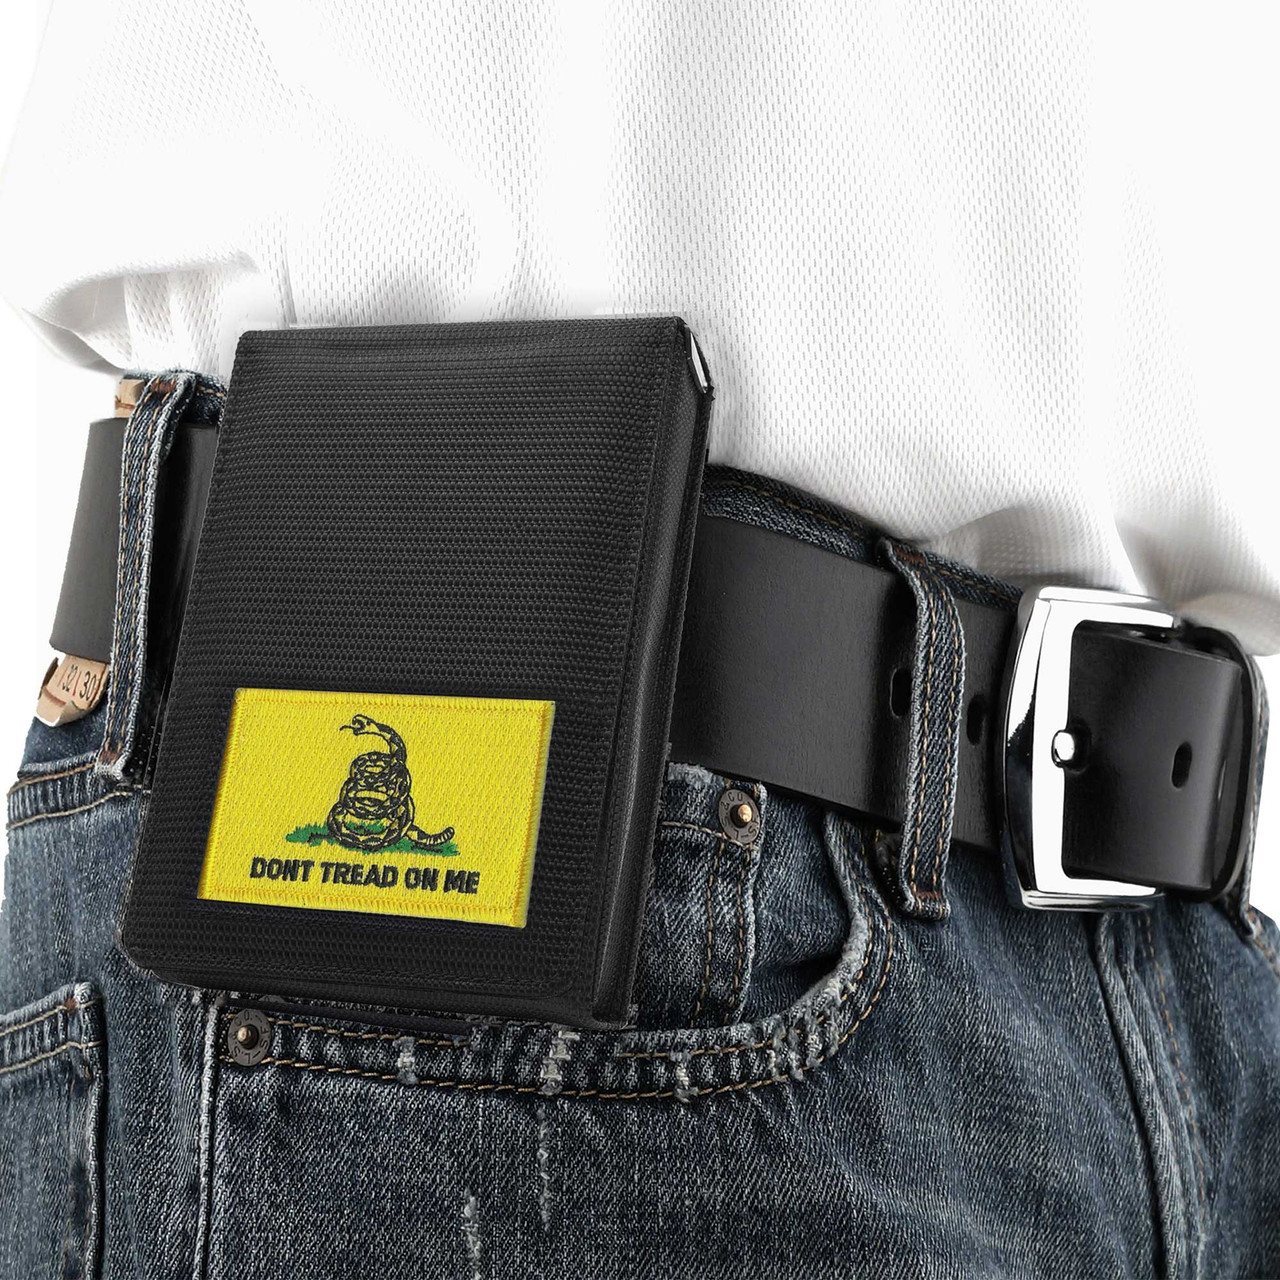 HK VP40 Don't Tread on Me Holster